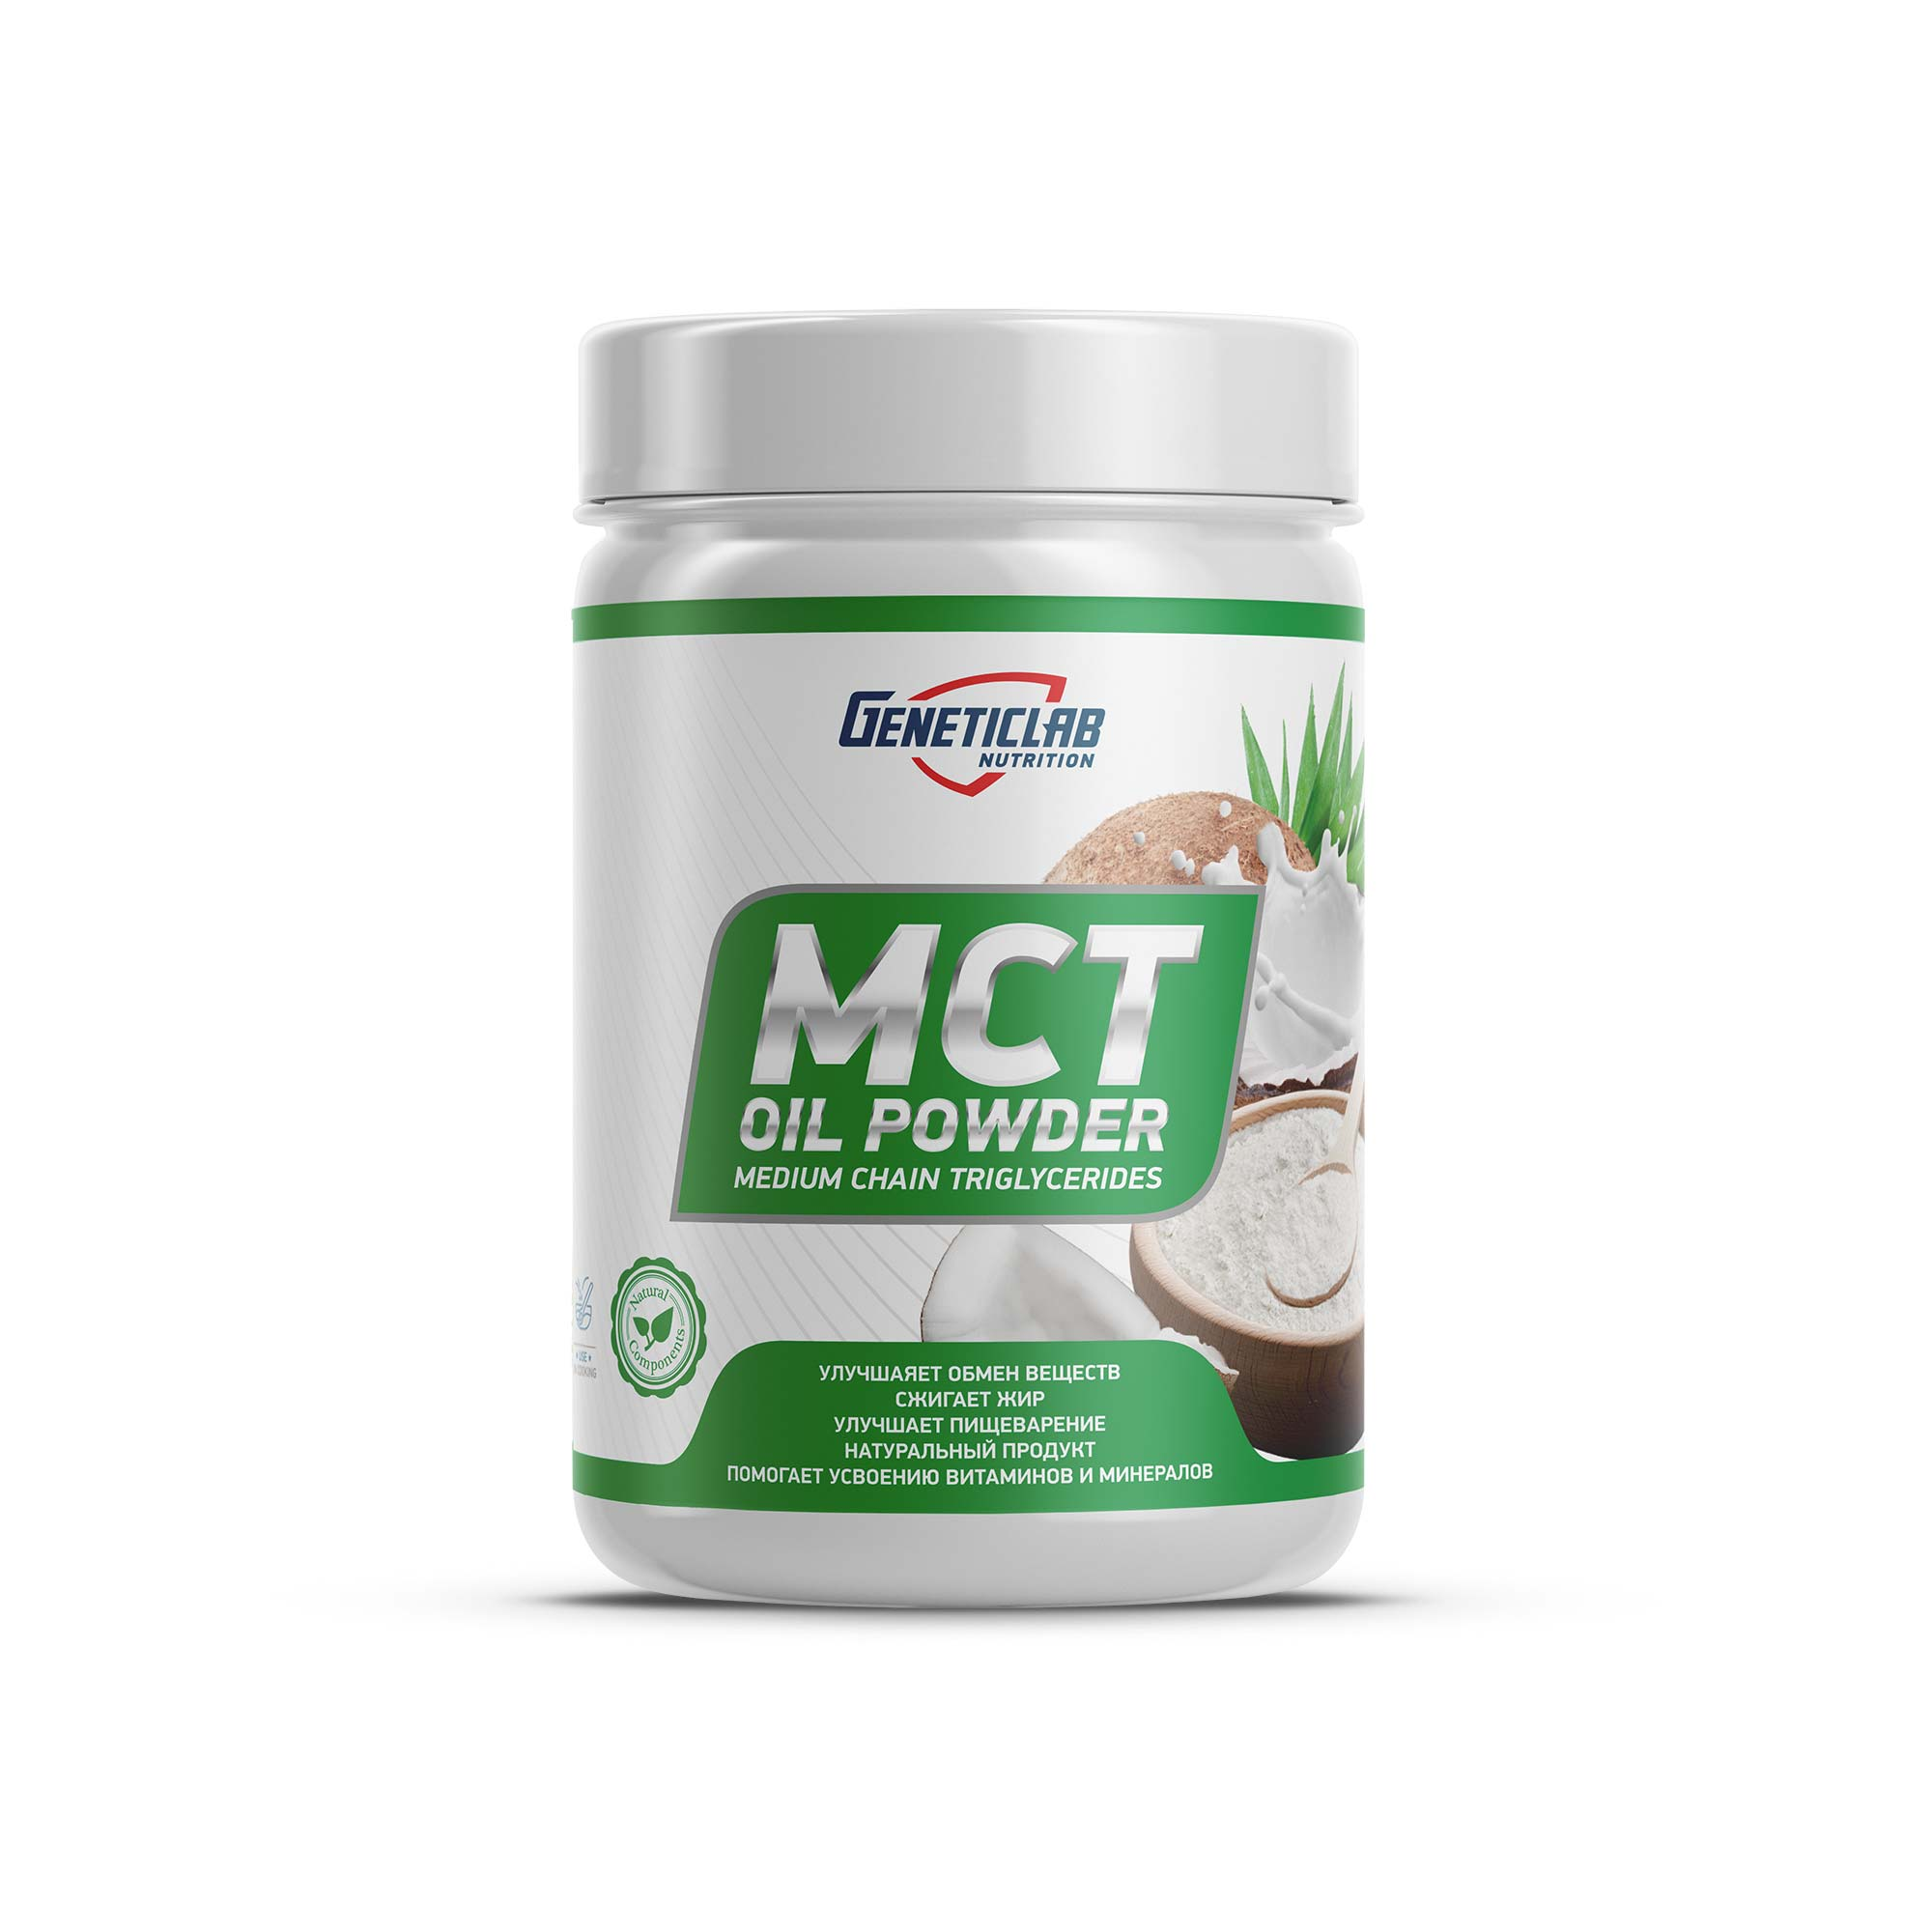 Geneticlab MCT OIL